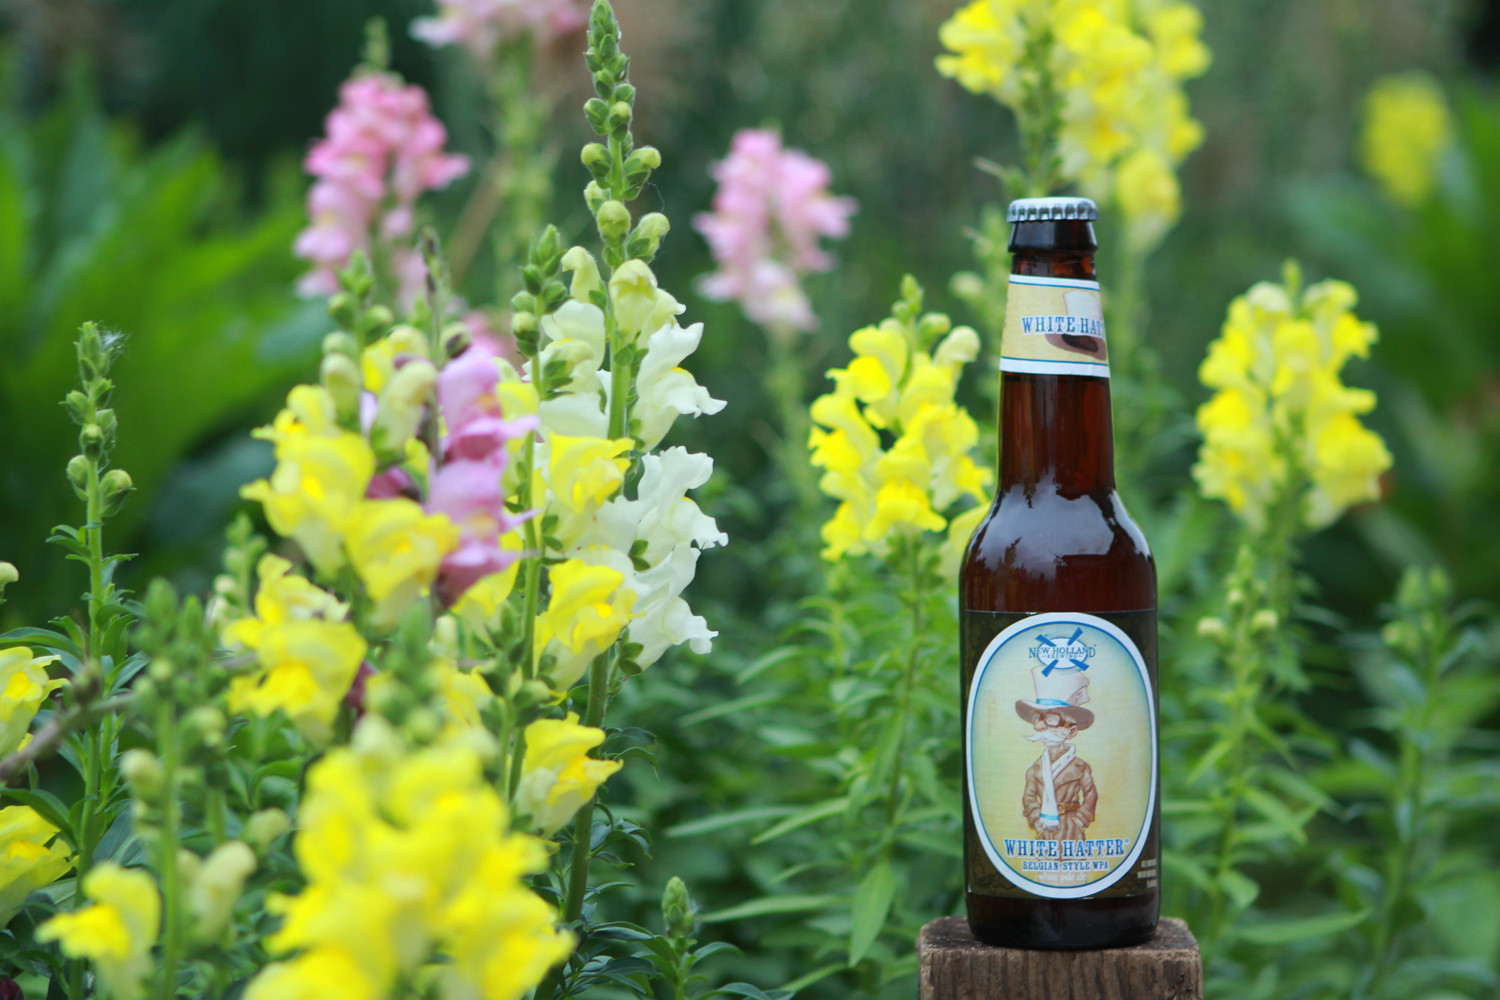 Summer beer White Hatter from New Holland.